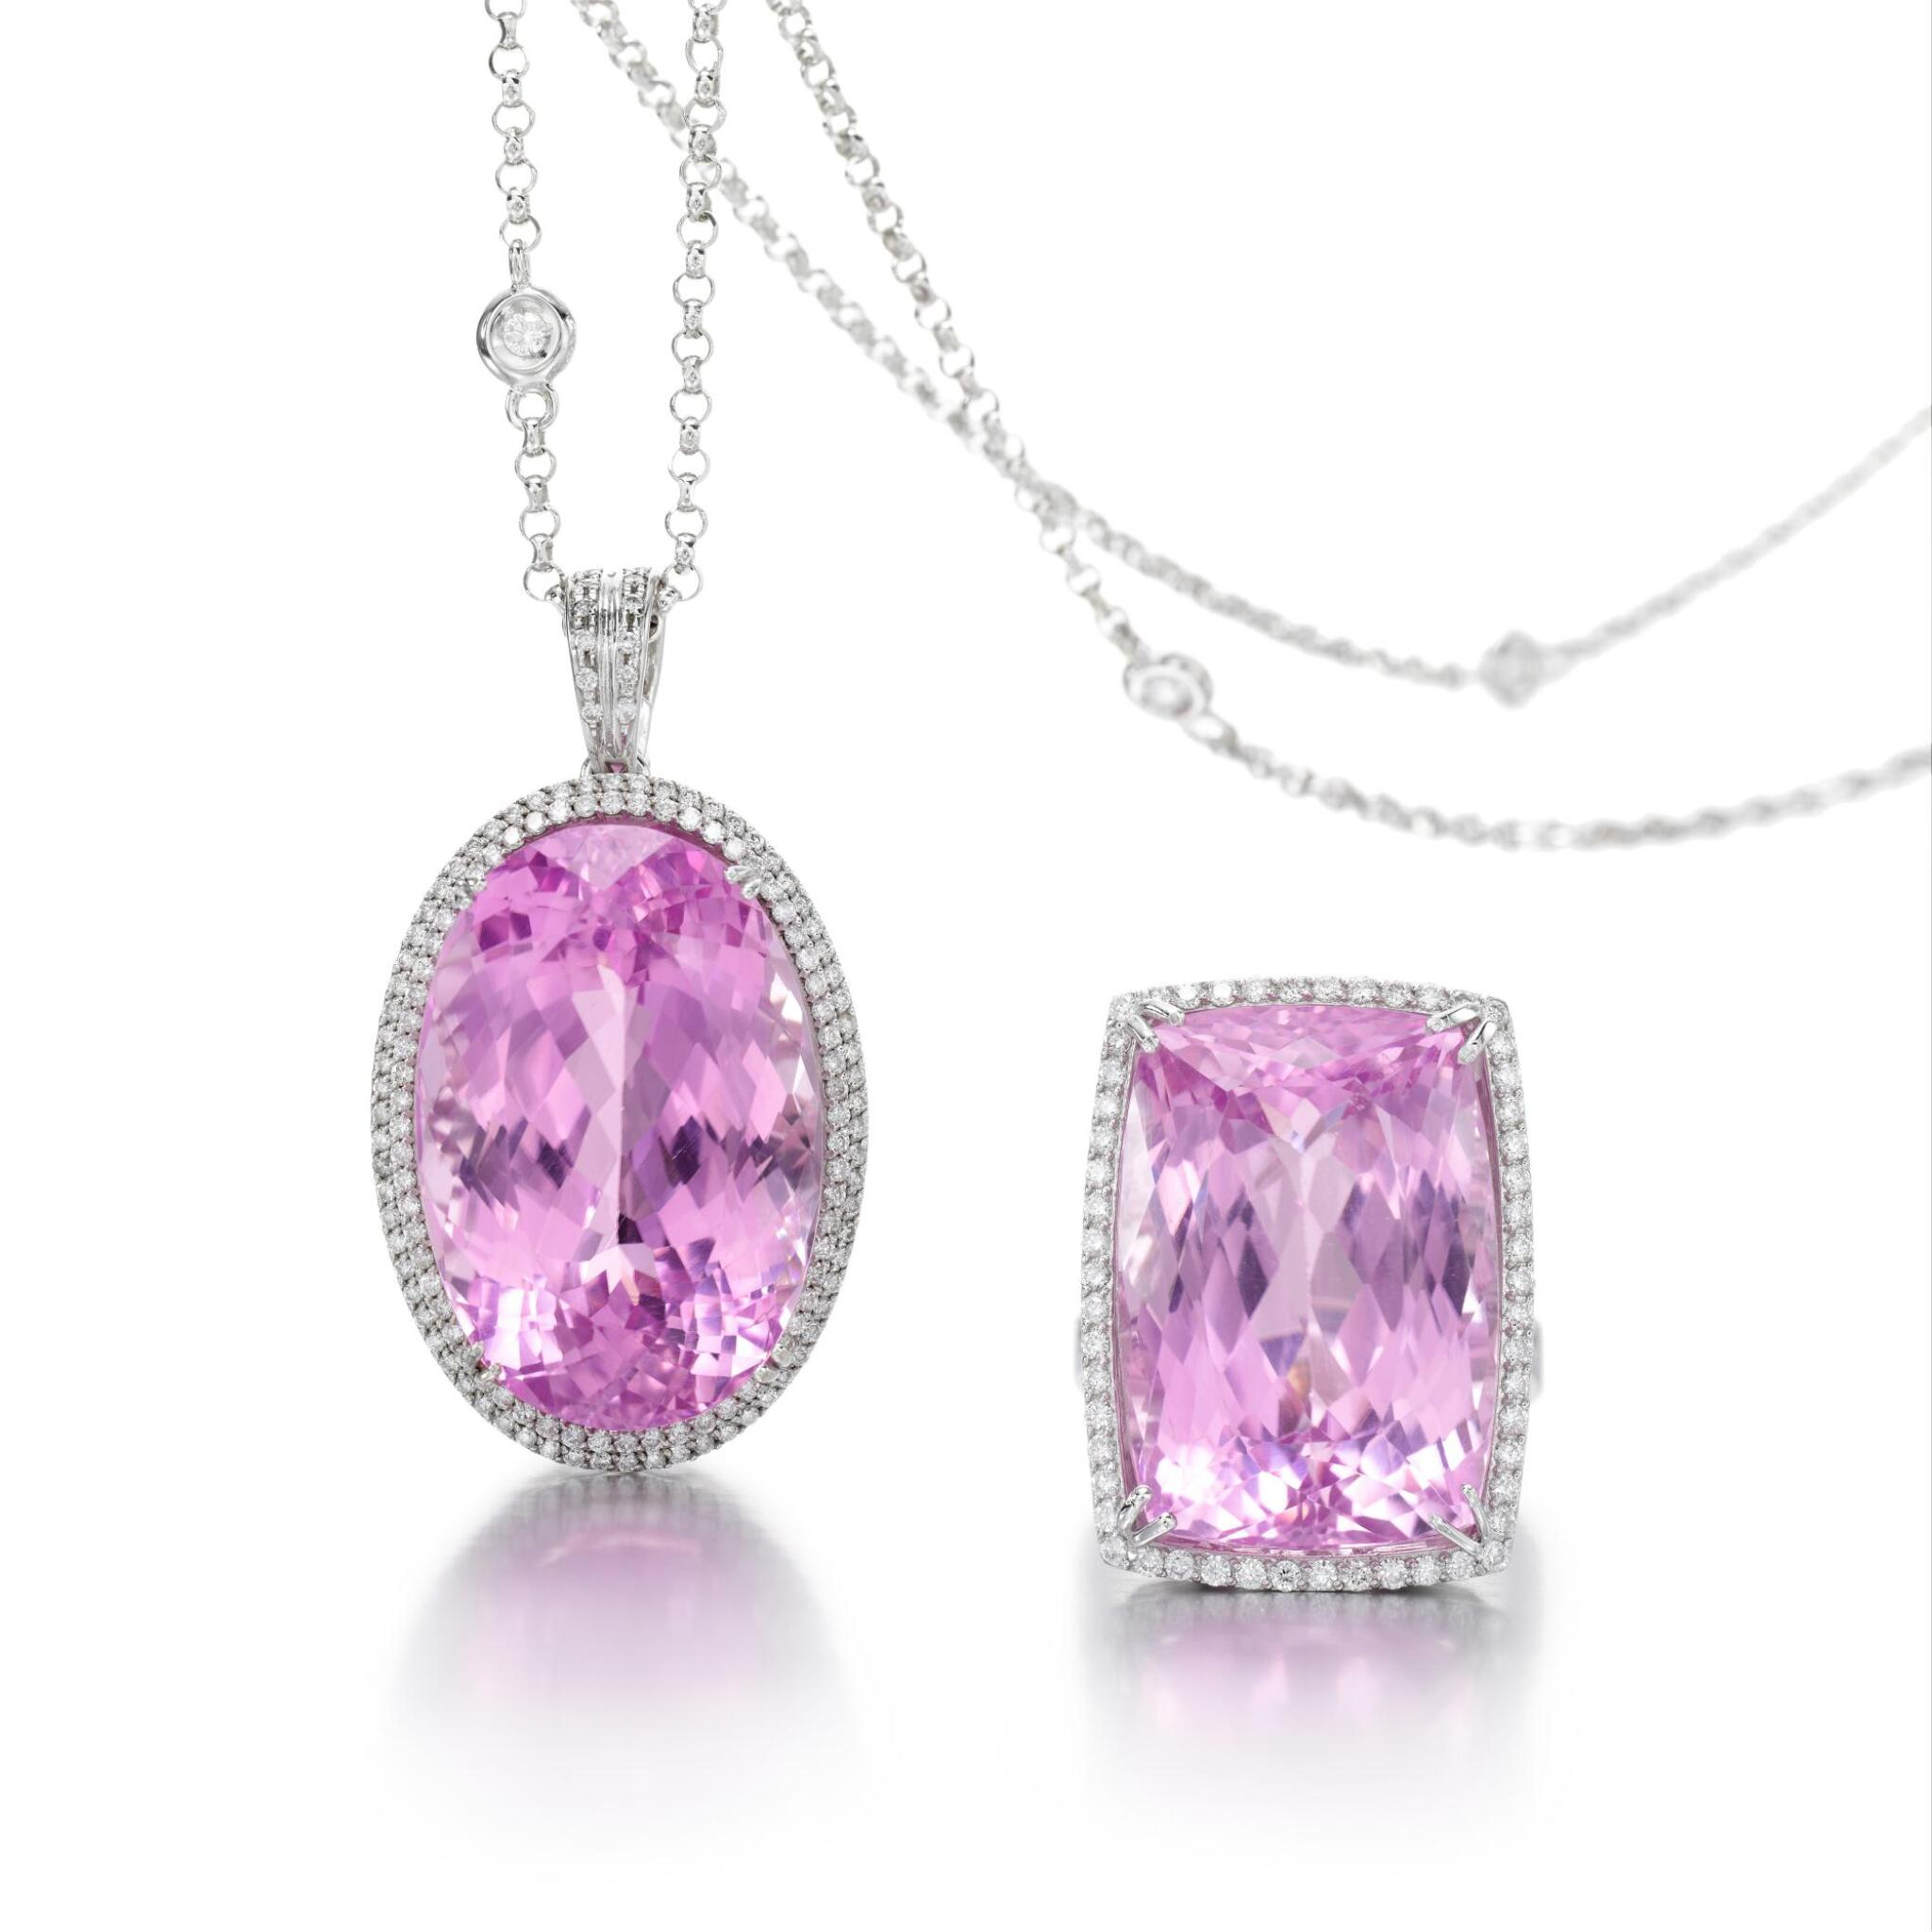 KUNZITE AND DIAMOND PENDANT AND A RING